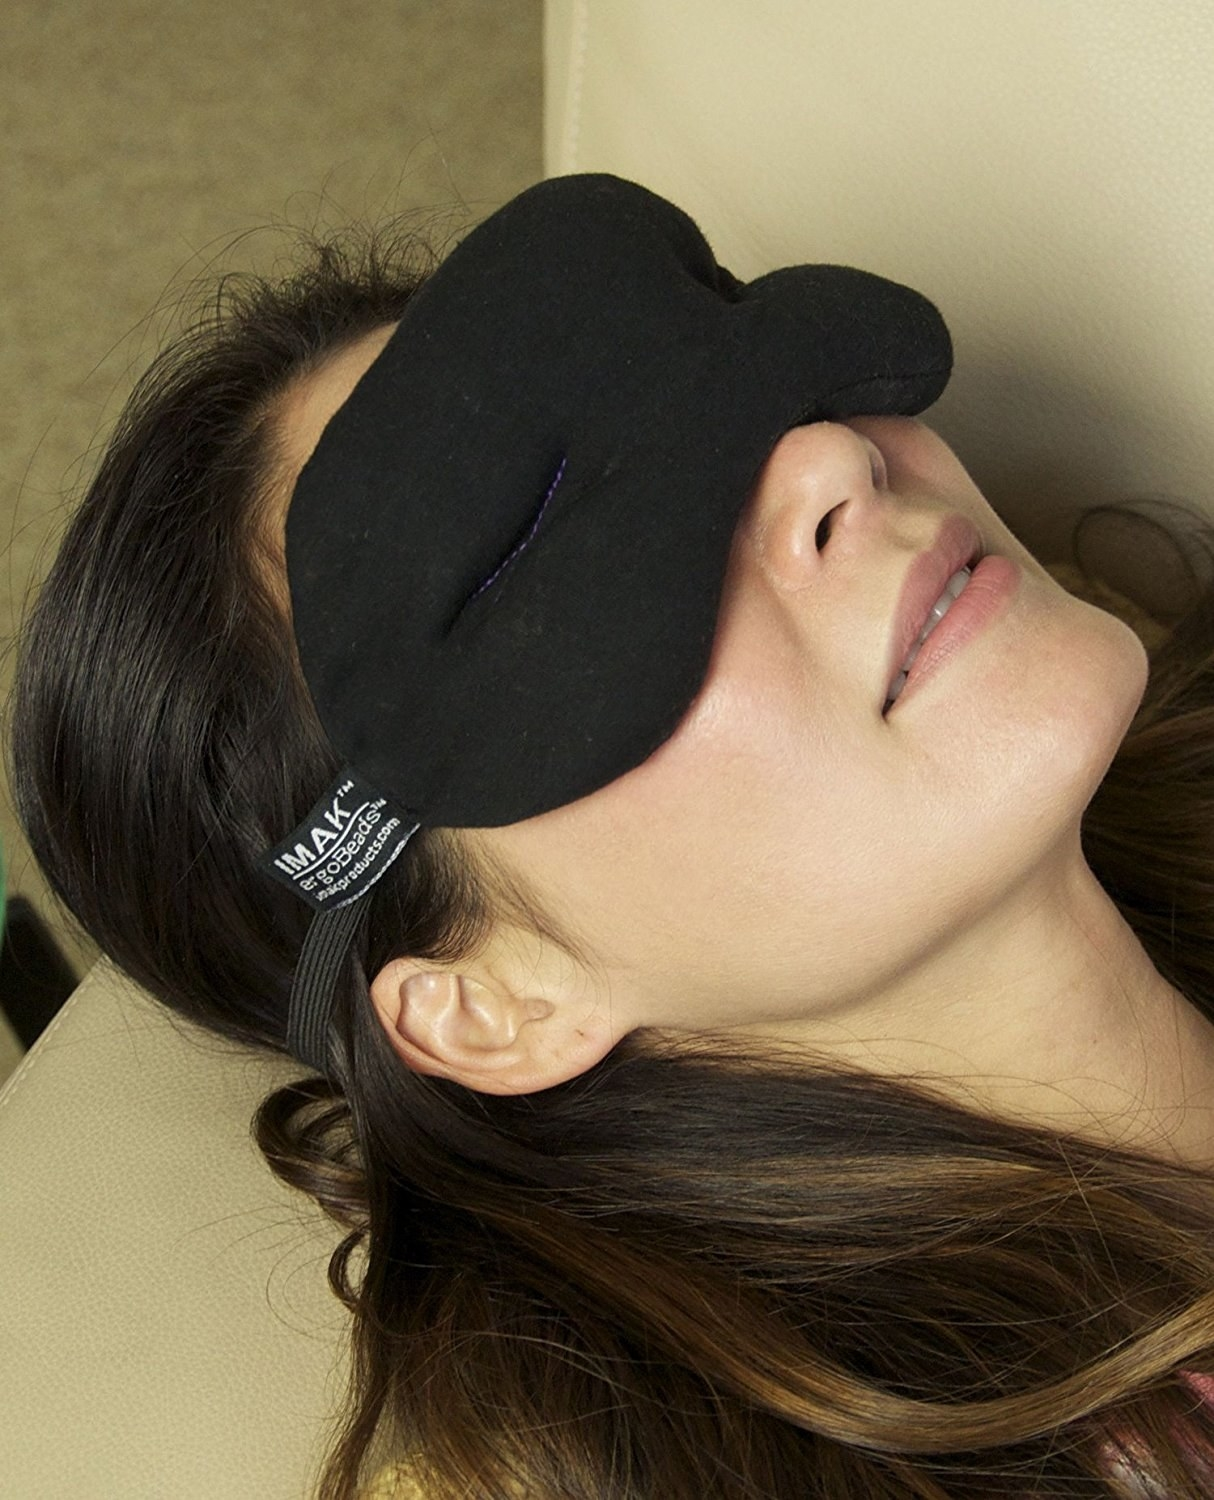 If You Regularly Suffer From Headaches Or Hangovers, You Need This